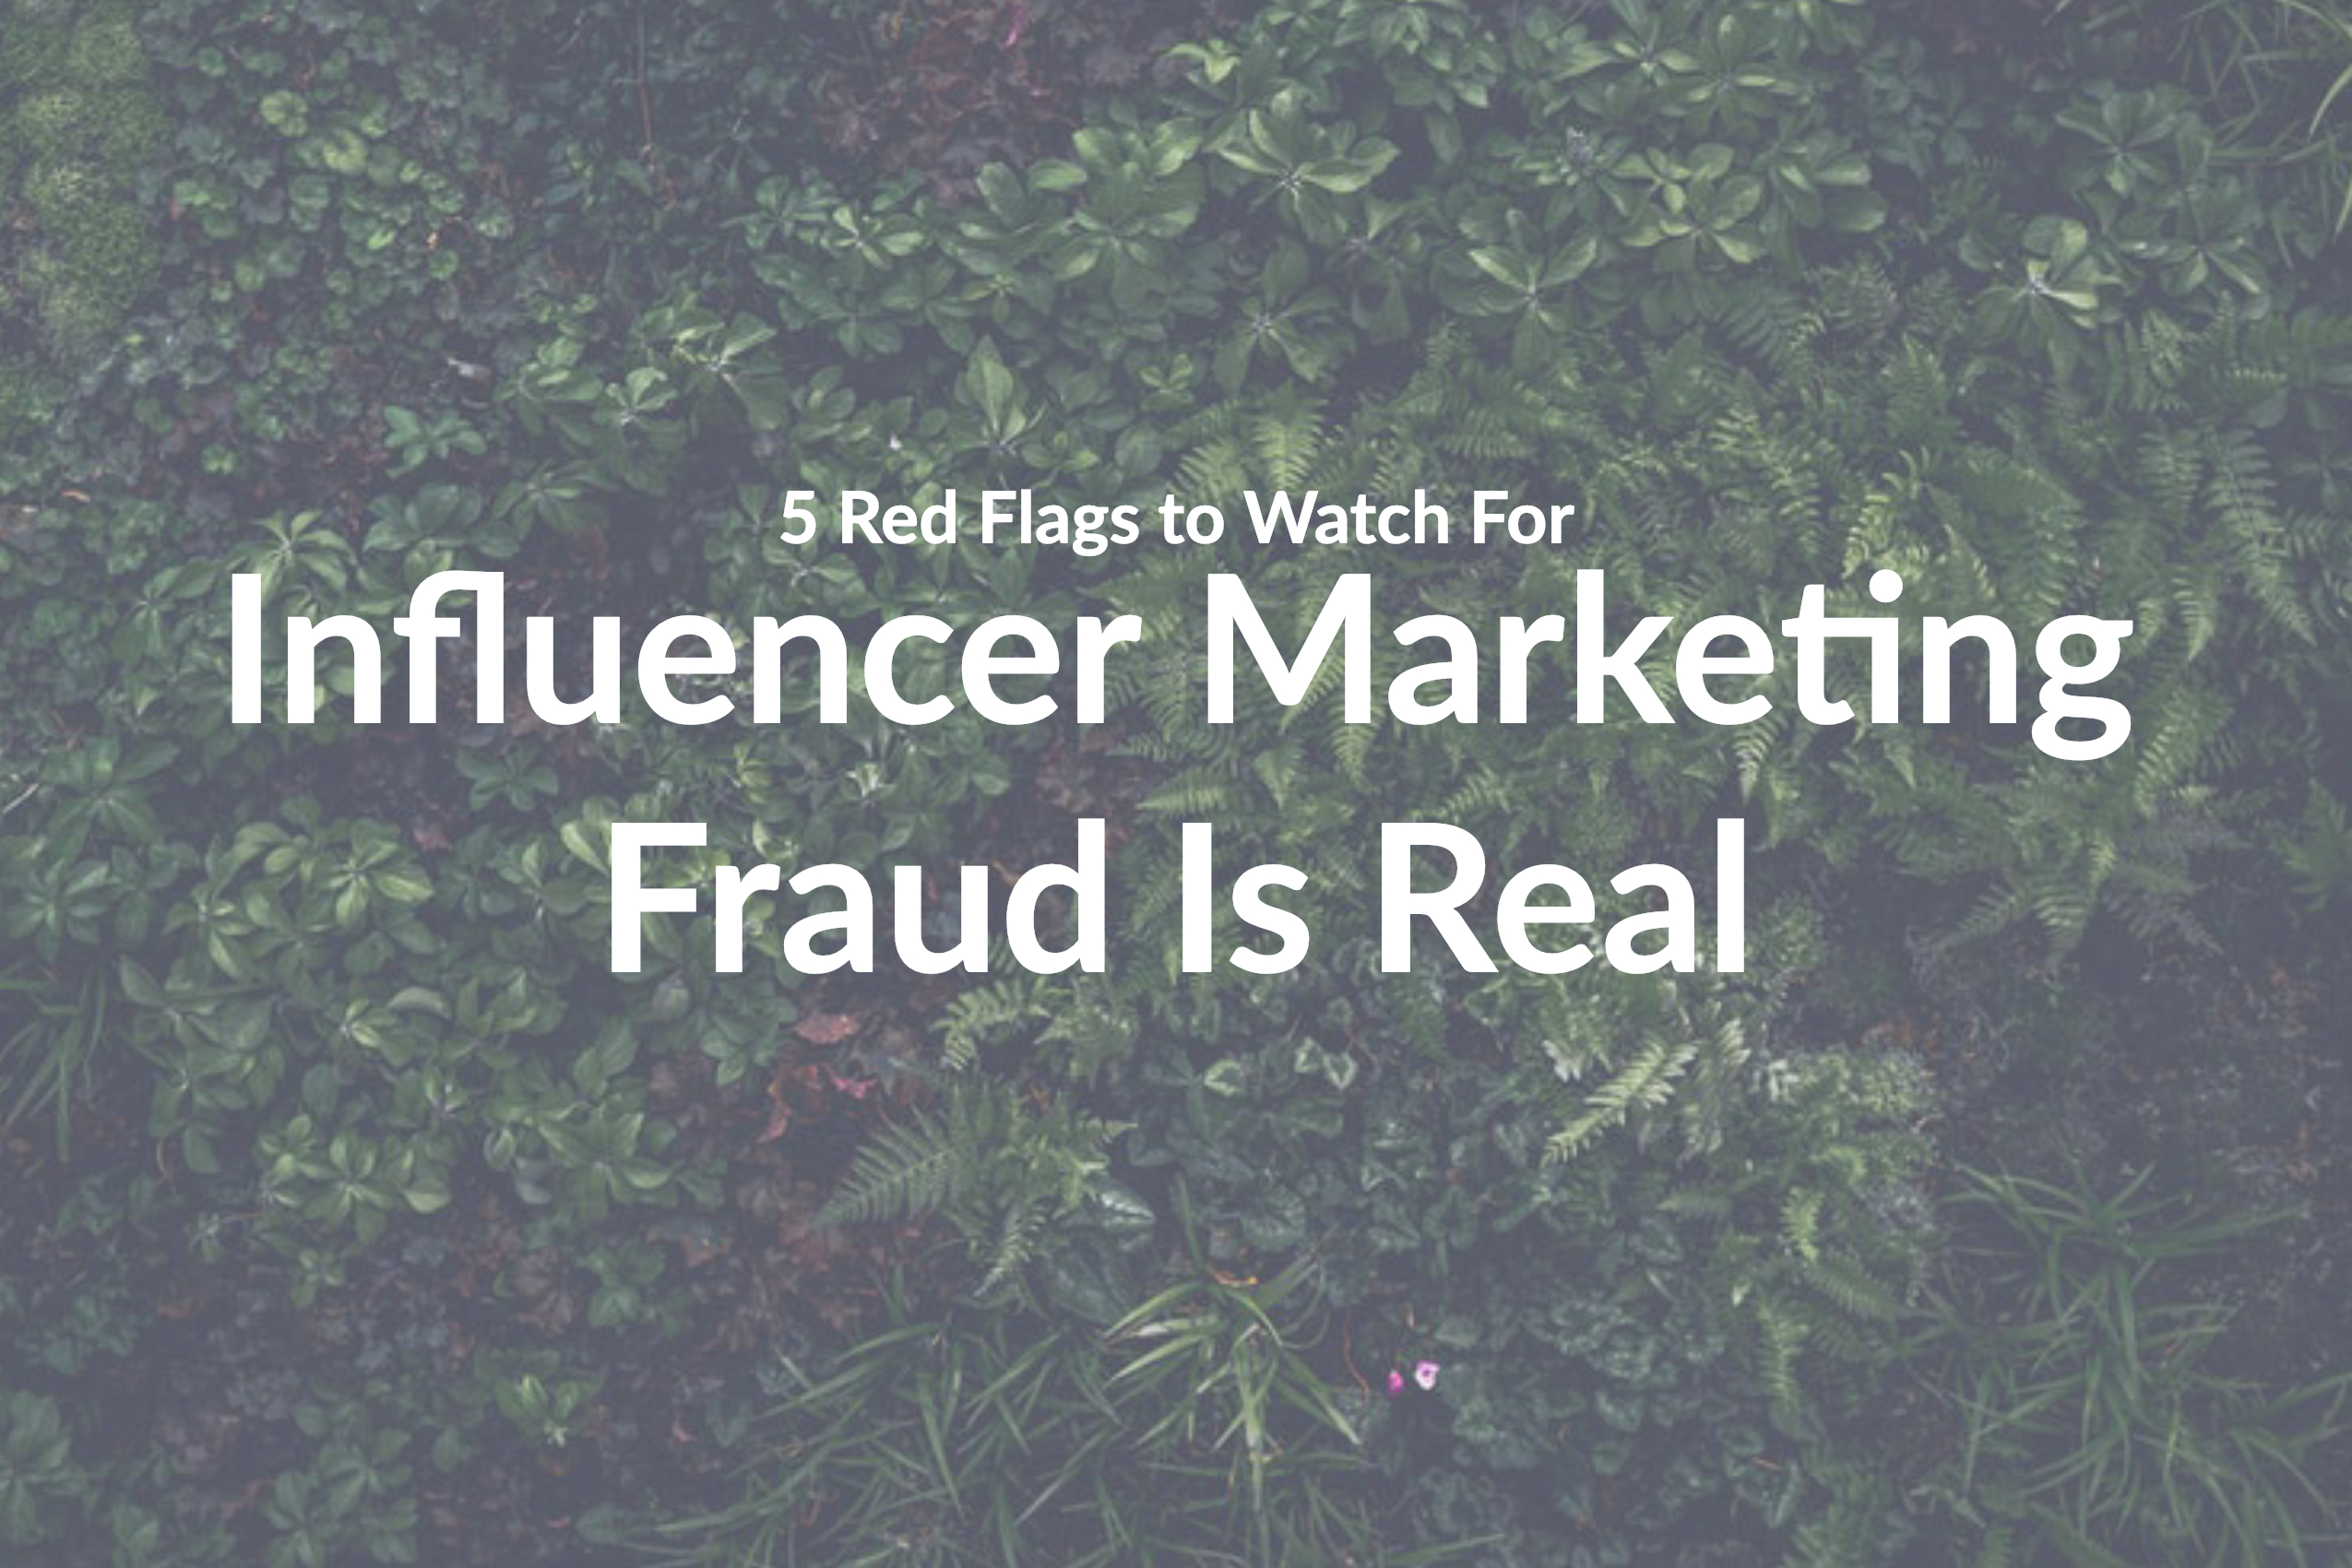 Influencer Marketing Fraud Is Real: 5 Red Flags to Watch For